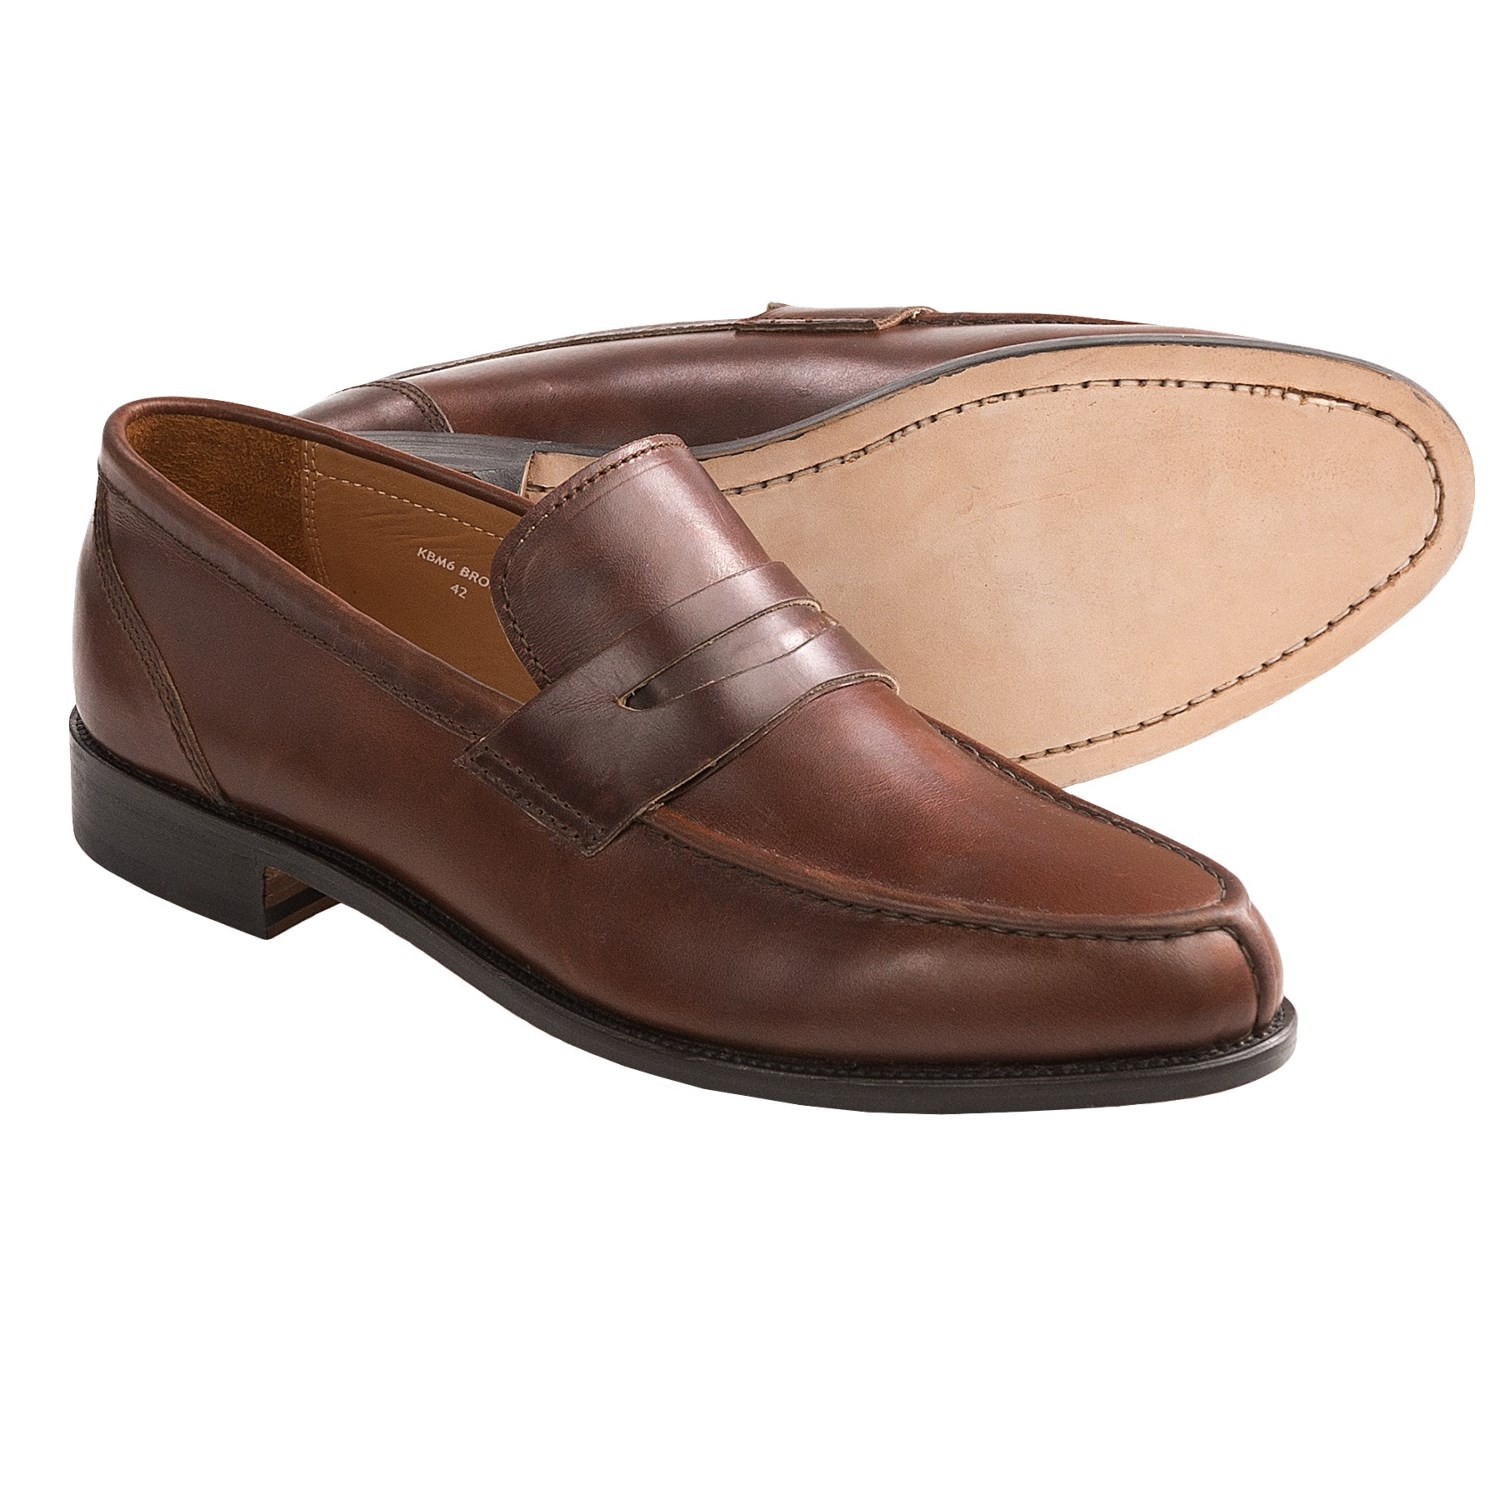 blackstone kbm06 loafer shoes for save 29